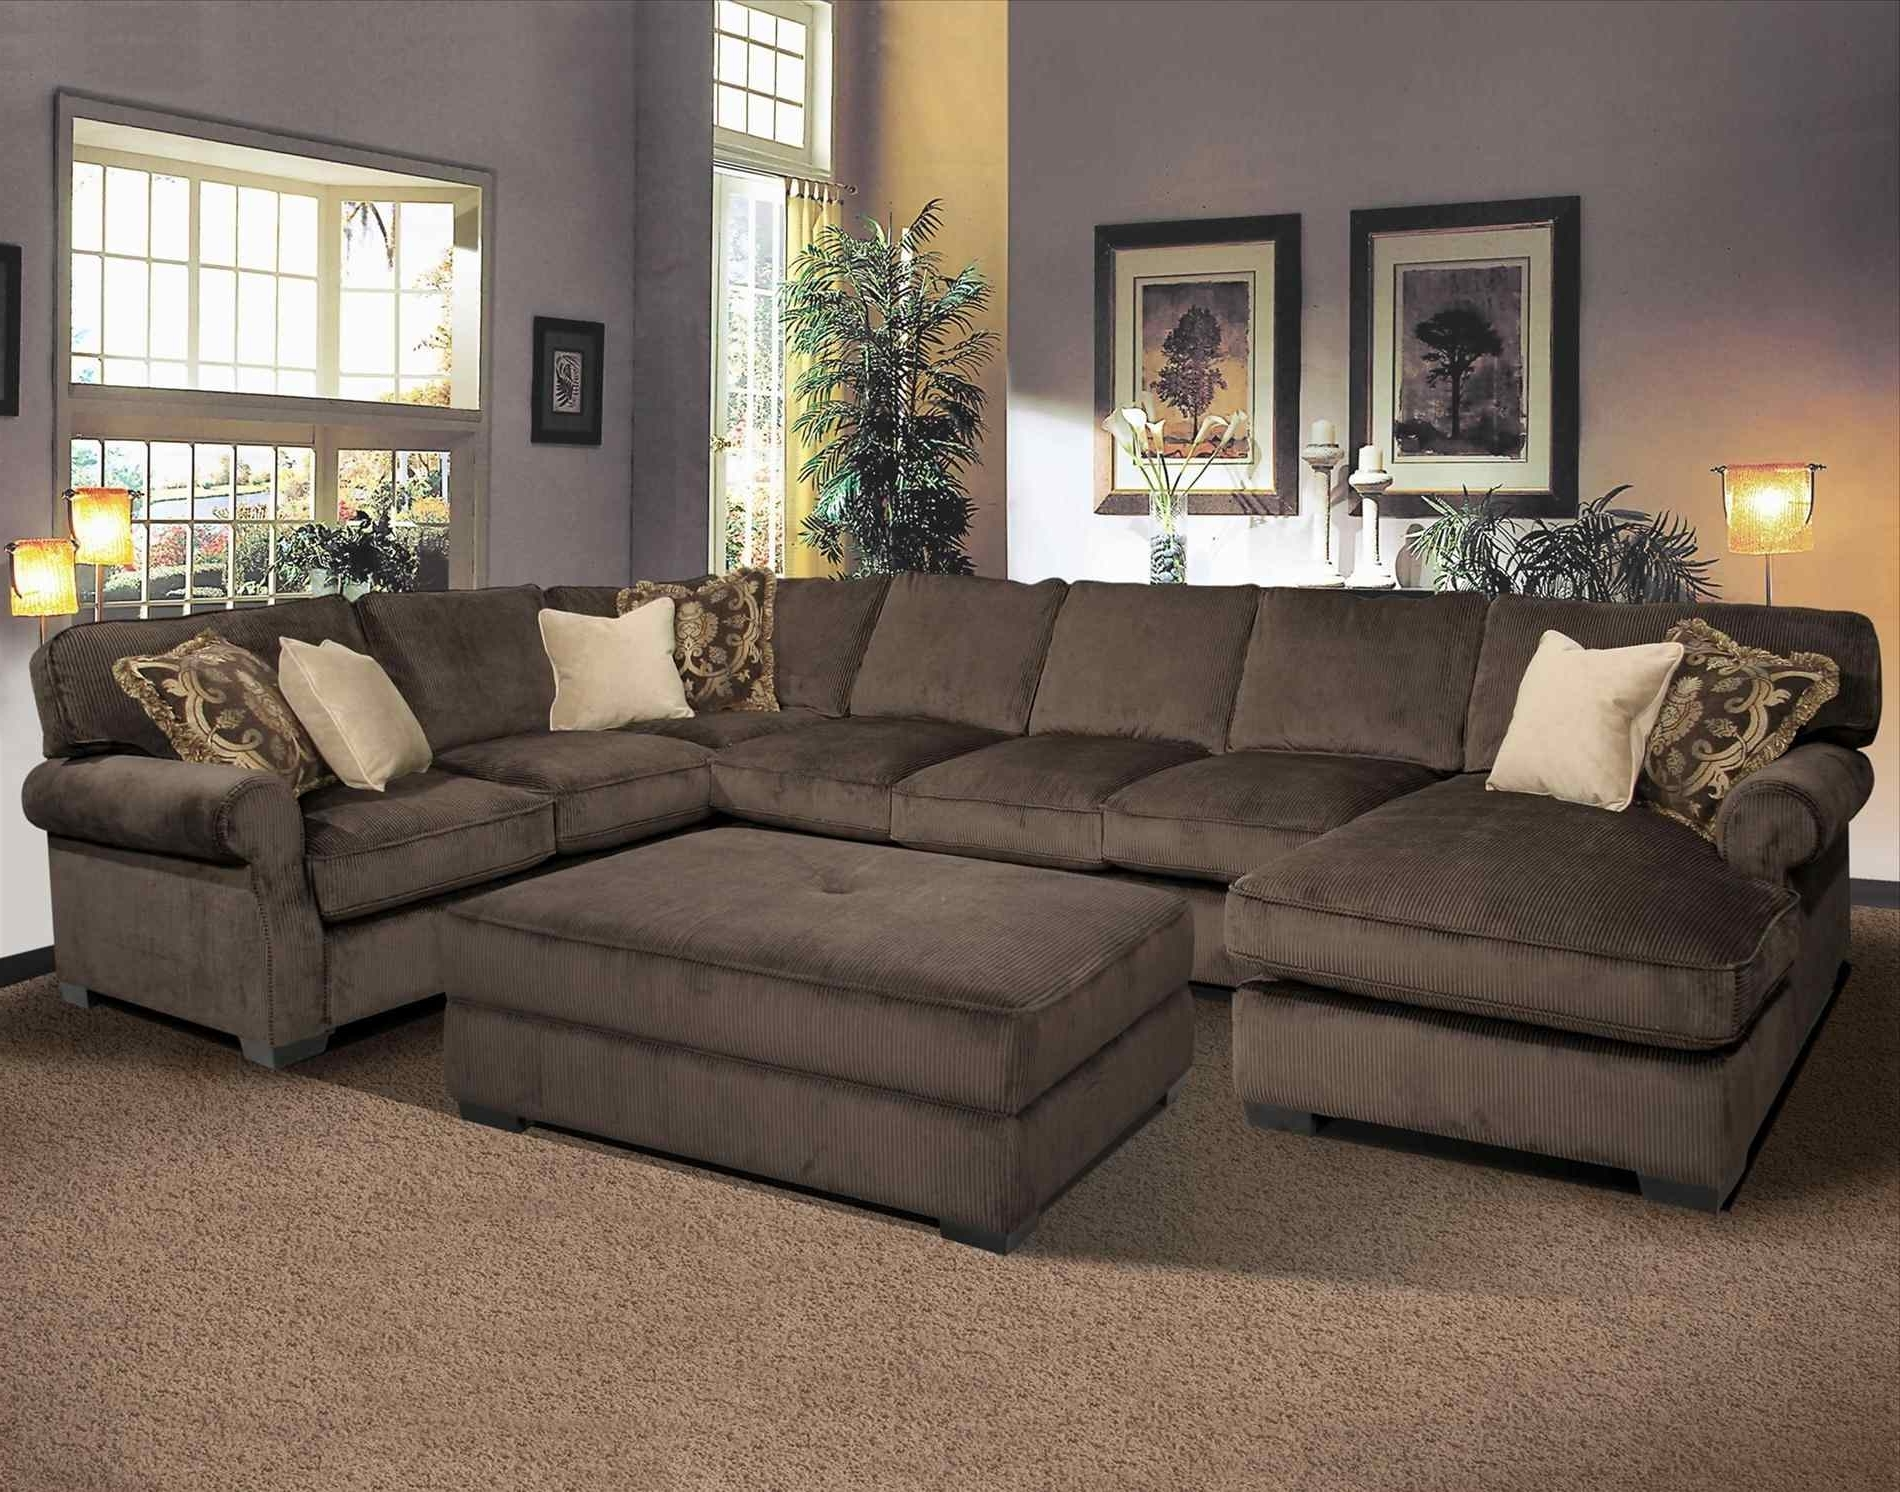 Large U Shaped Sectionals Intended For Most Recently Released Sofa : Options Large U Shaped Sofa Set Designs Scale Sectional (View 10 of 15)